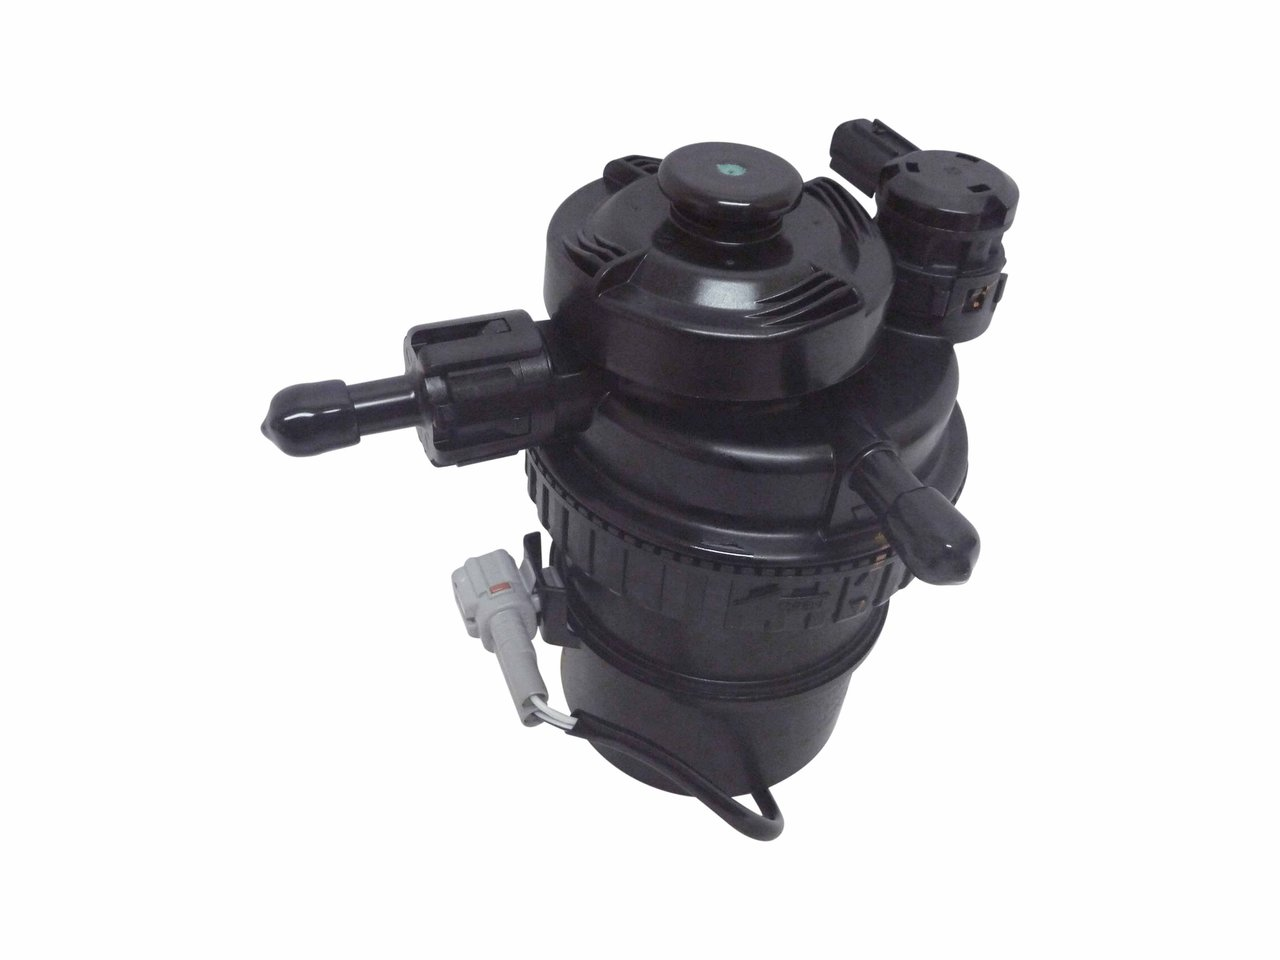 Engine Fuel Filter Housing Ford 1300 Wiring Spin On Genuine Assembly Suitable For Hilux D4d Turbo Diesel Auxiliary Kit